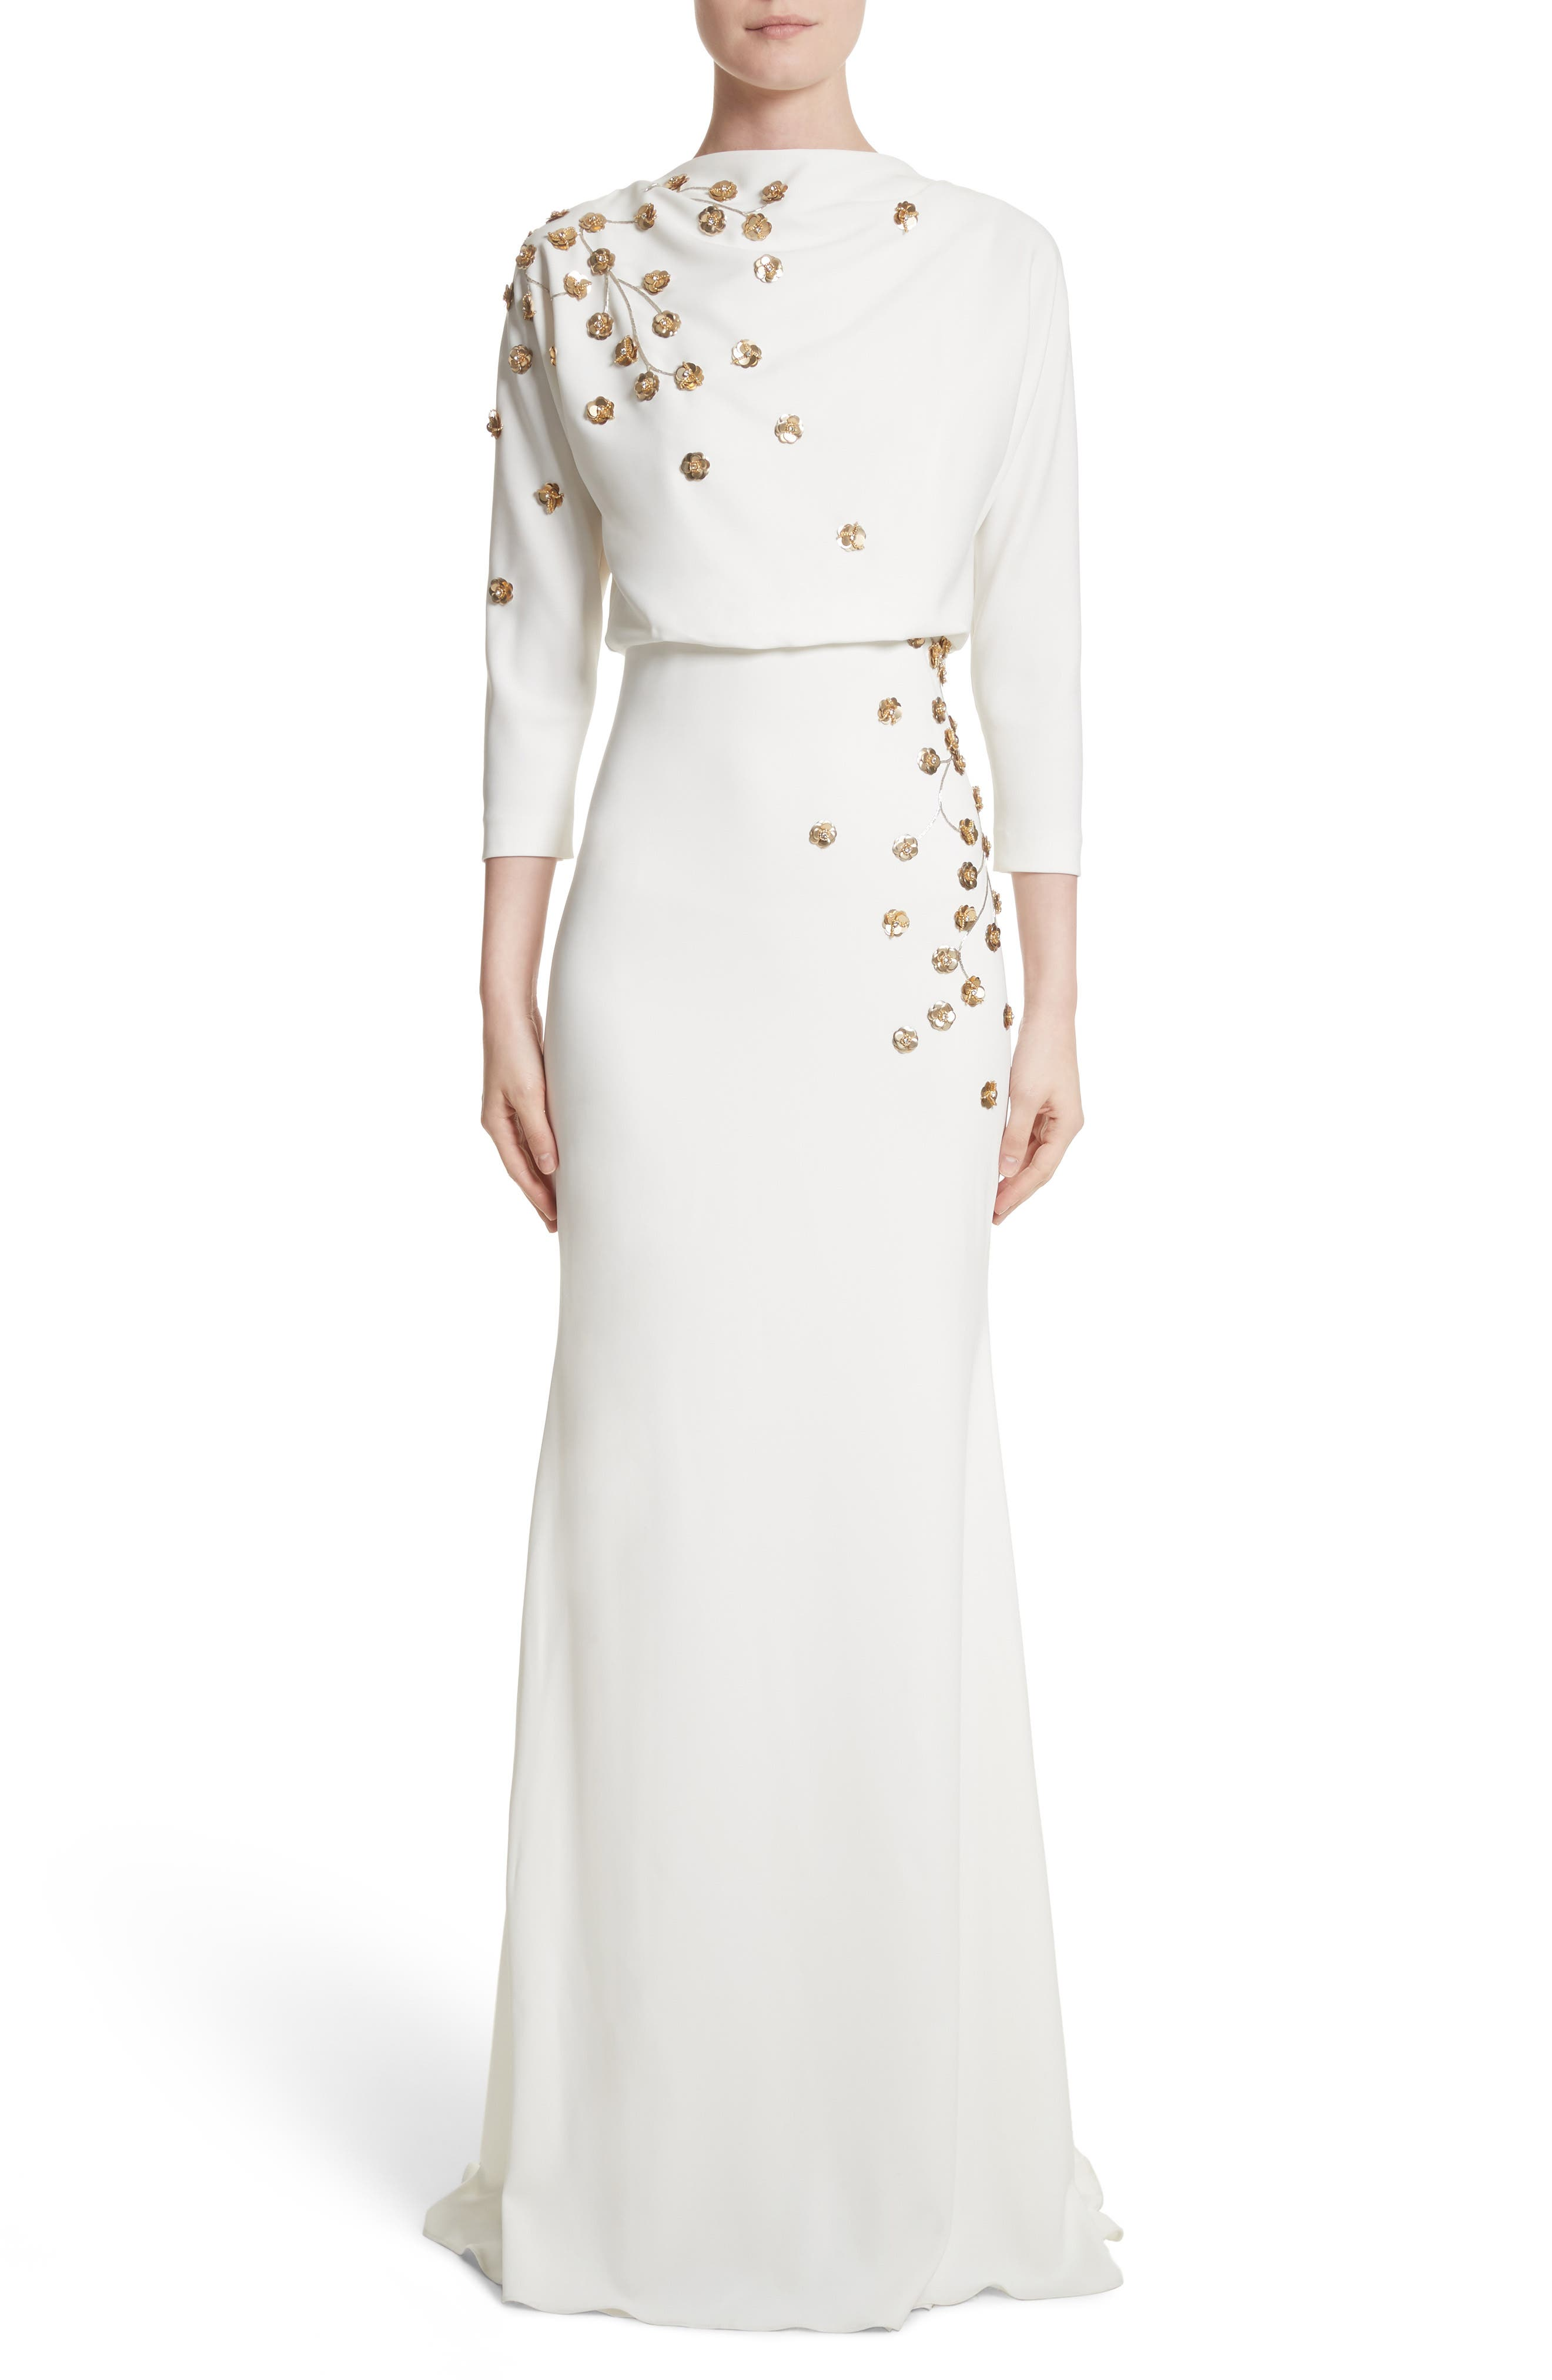 Badgley Mischka Couture Floral Embellished Crepe Gown